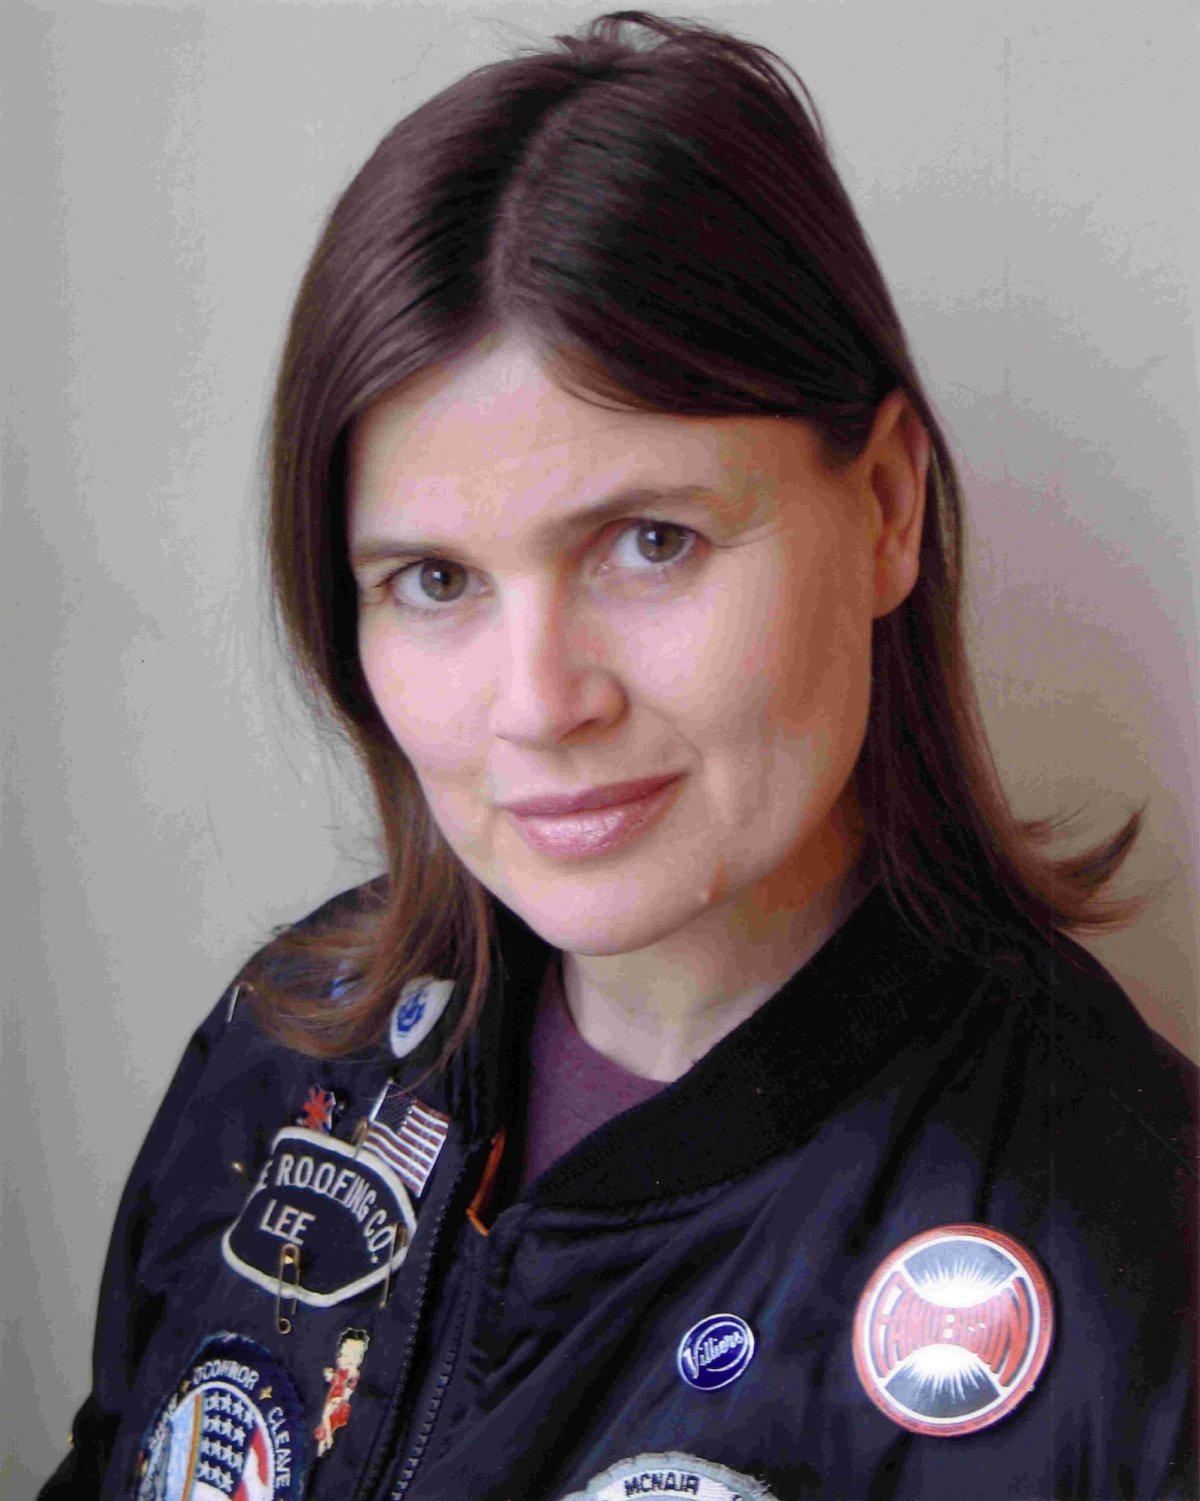 SPECIAL GUEST: Dr Who actress Sophie Aldred